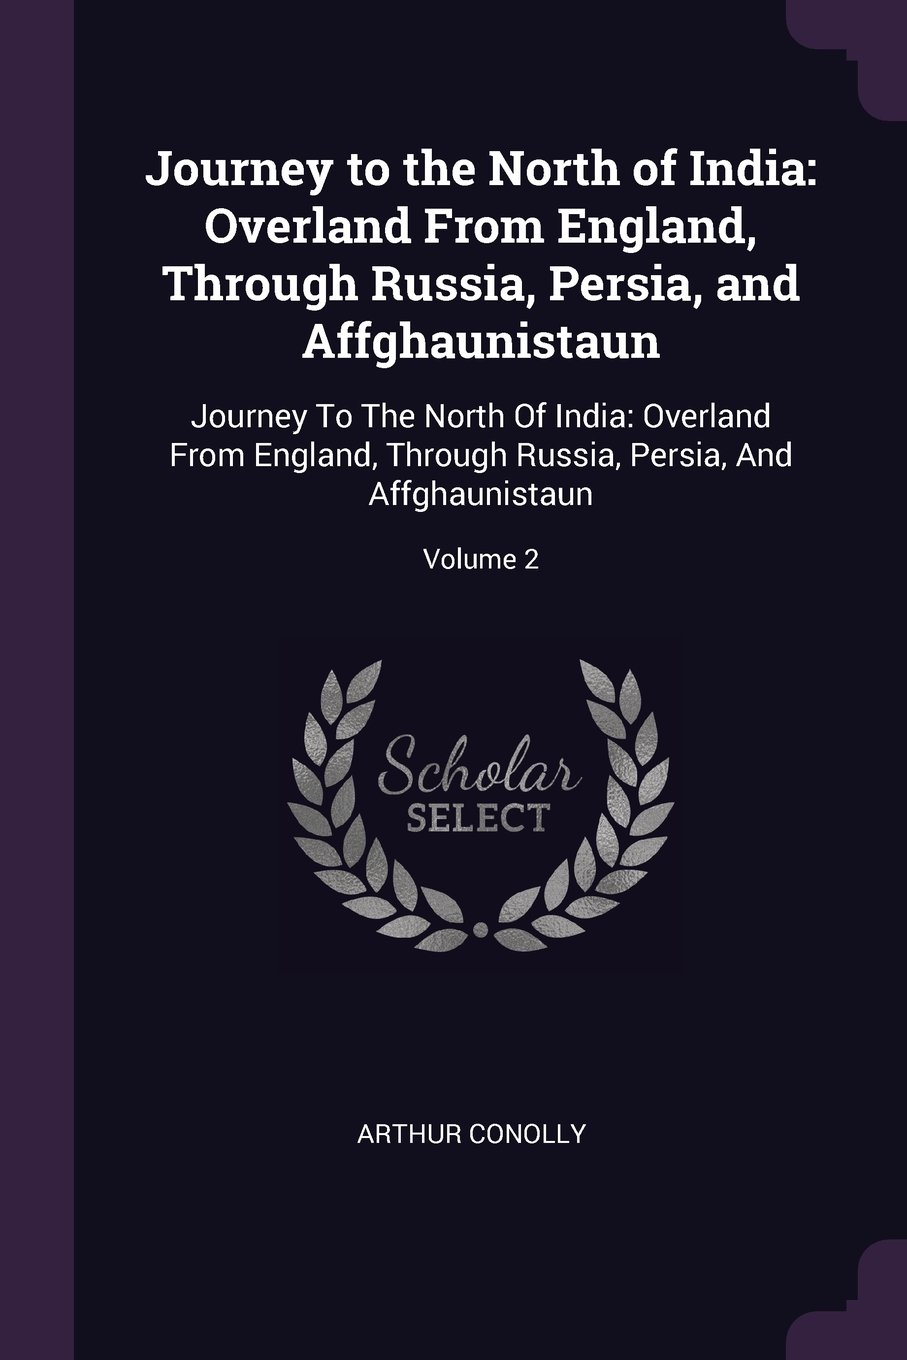 Download Journey to the North of India: Overland From England, Through Russia, Persia, and Affghaunistaun: Journey To The North Of India: Overland From ... Russia, Persia, And Affghaunistaun; Volume 2 ebook